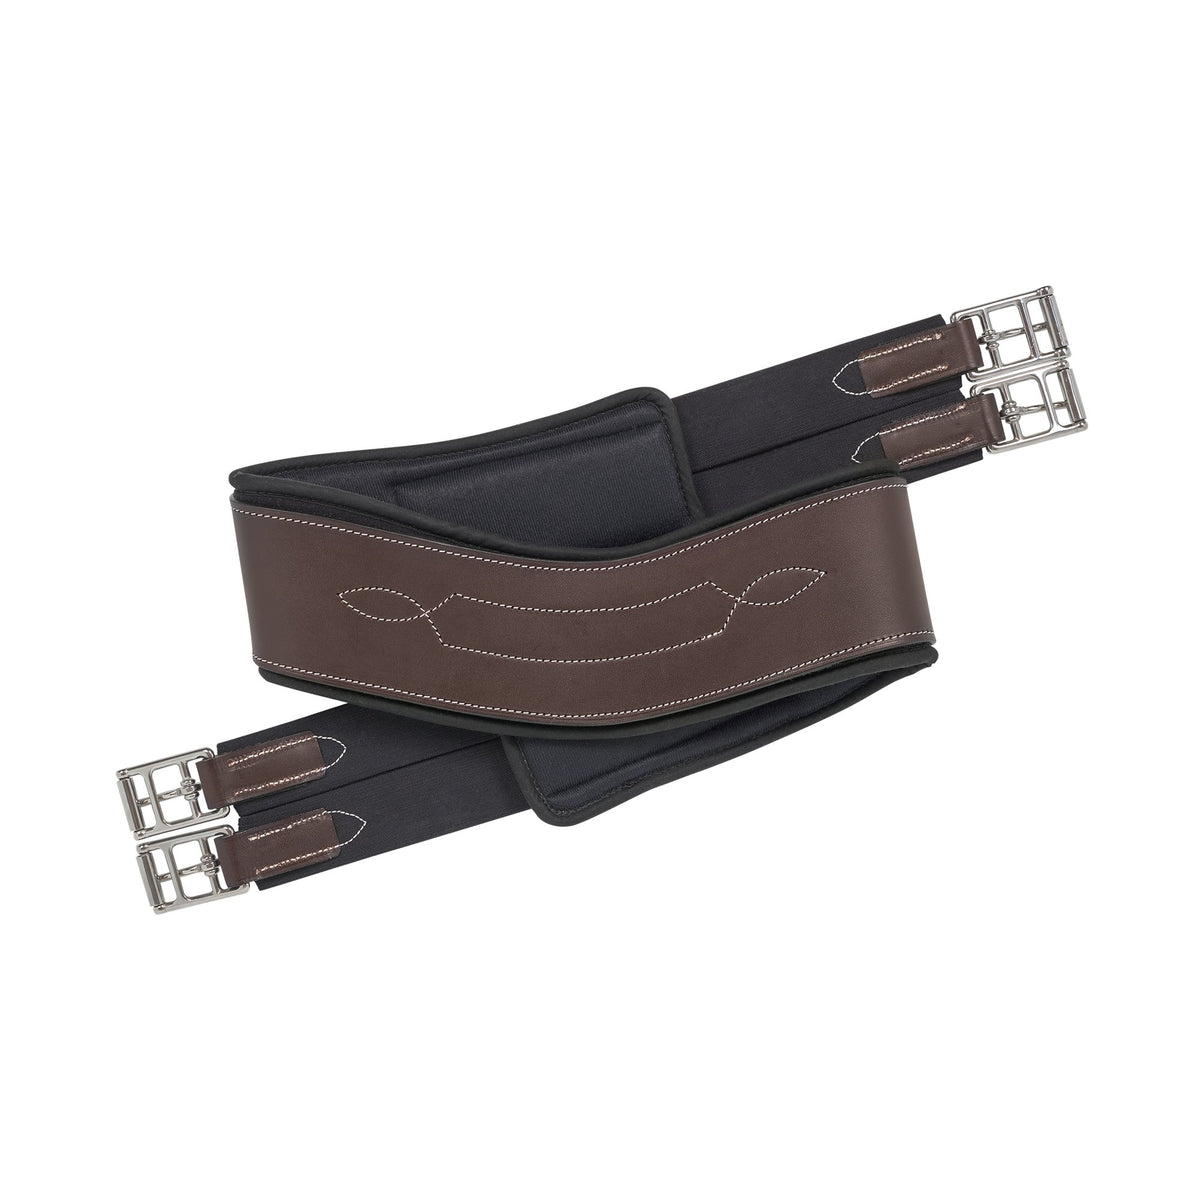 Equifit Anatomical Hunter Girth